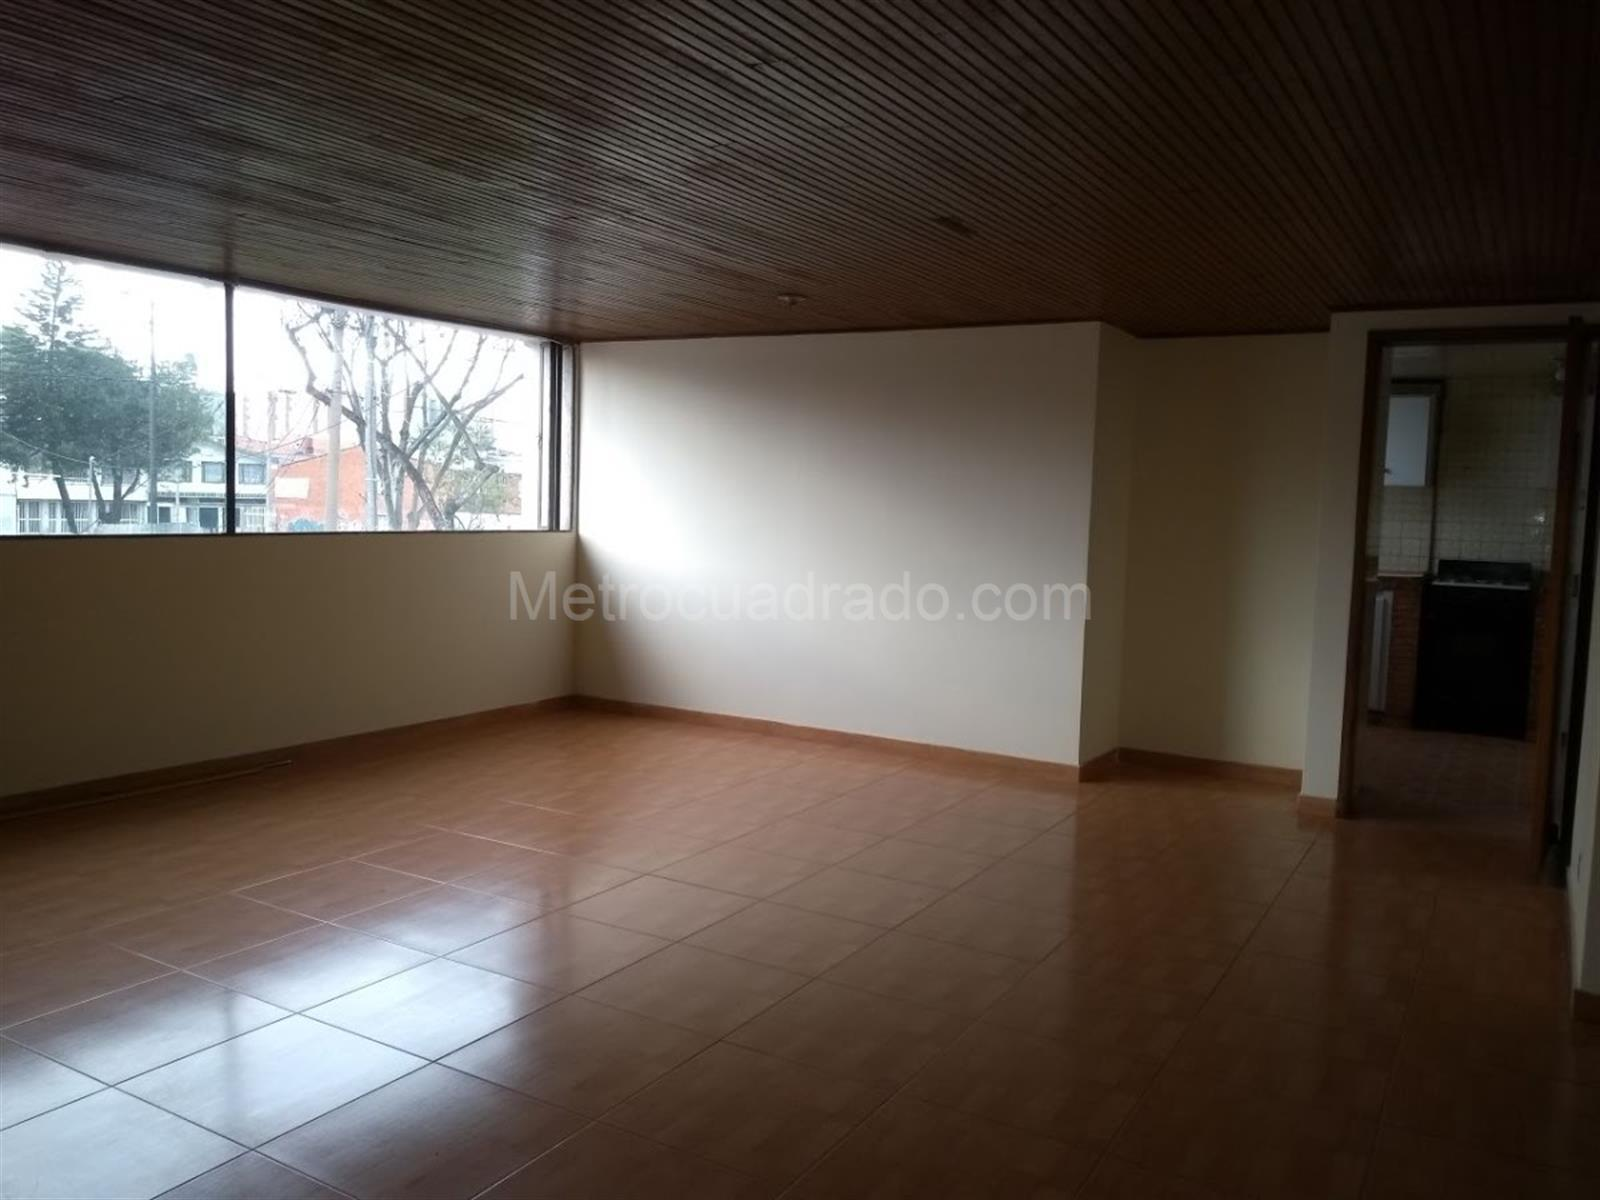 Arriendo de Apartamento en Normandia occidental  Bogot D